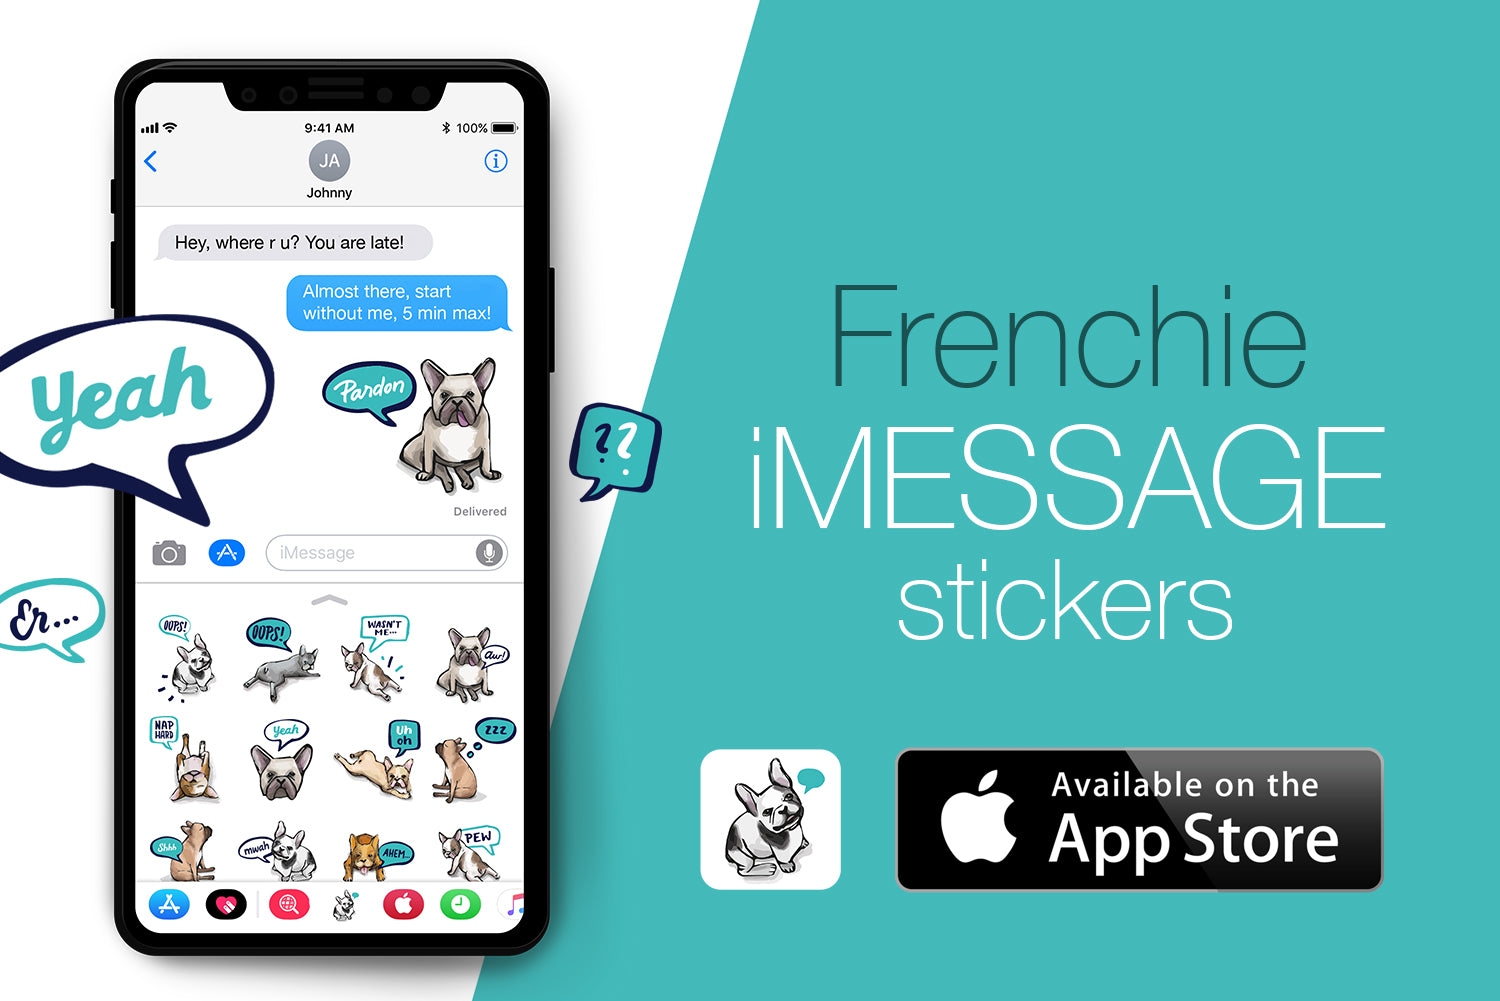 Frenchie for iMessage